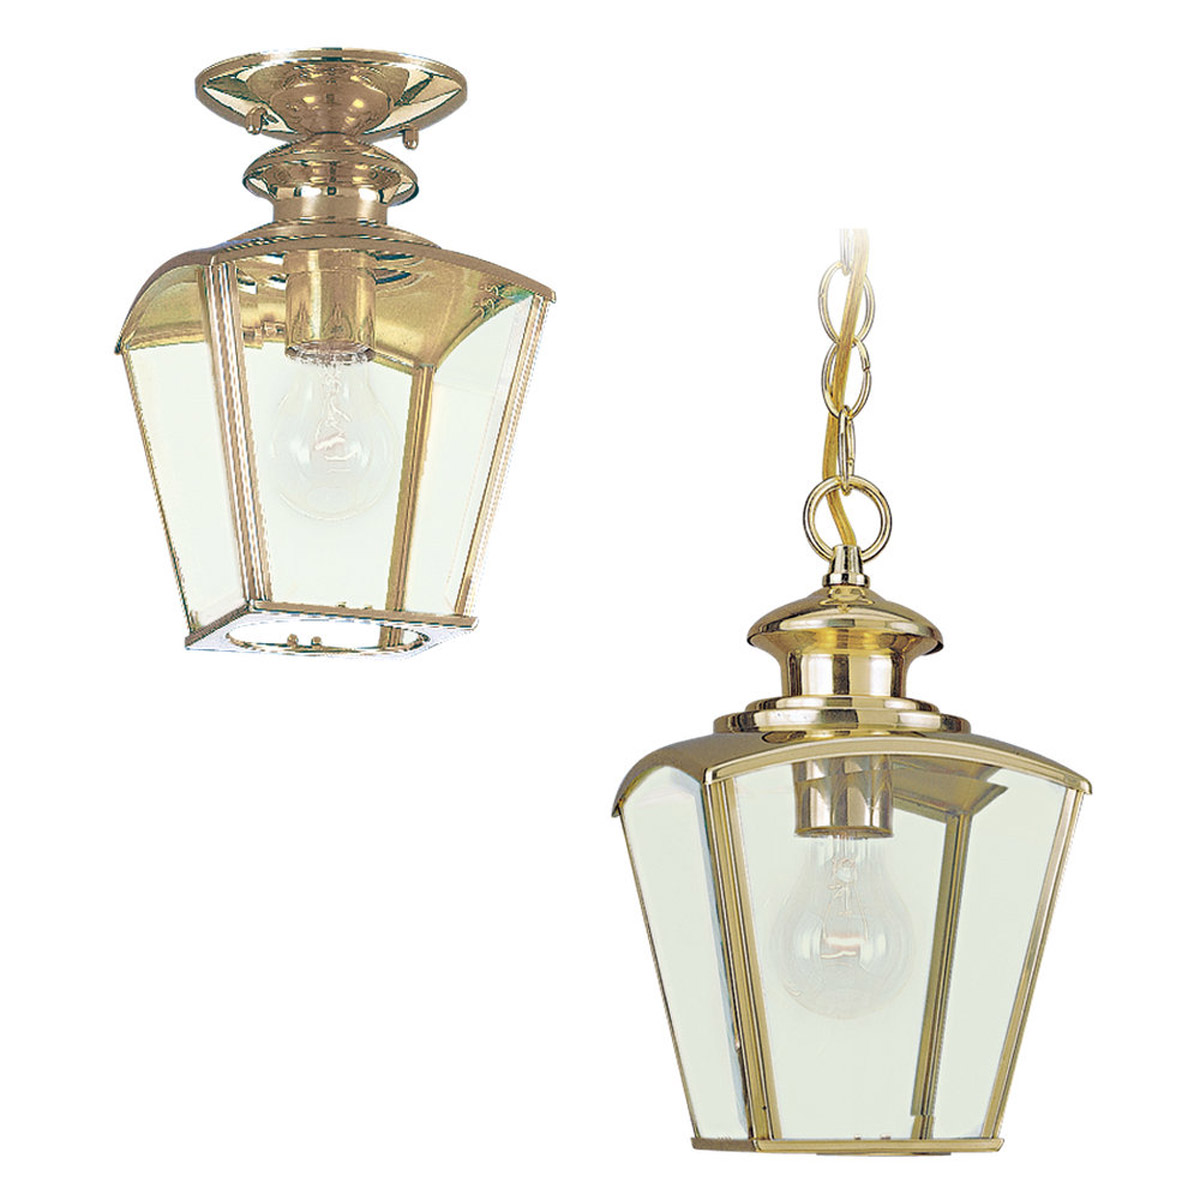 Sea Gull Lighting New Castle 1 Light Outdoor Pendant in Polished Brass 6023-02 photo